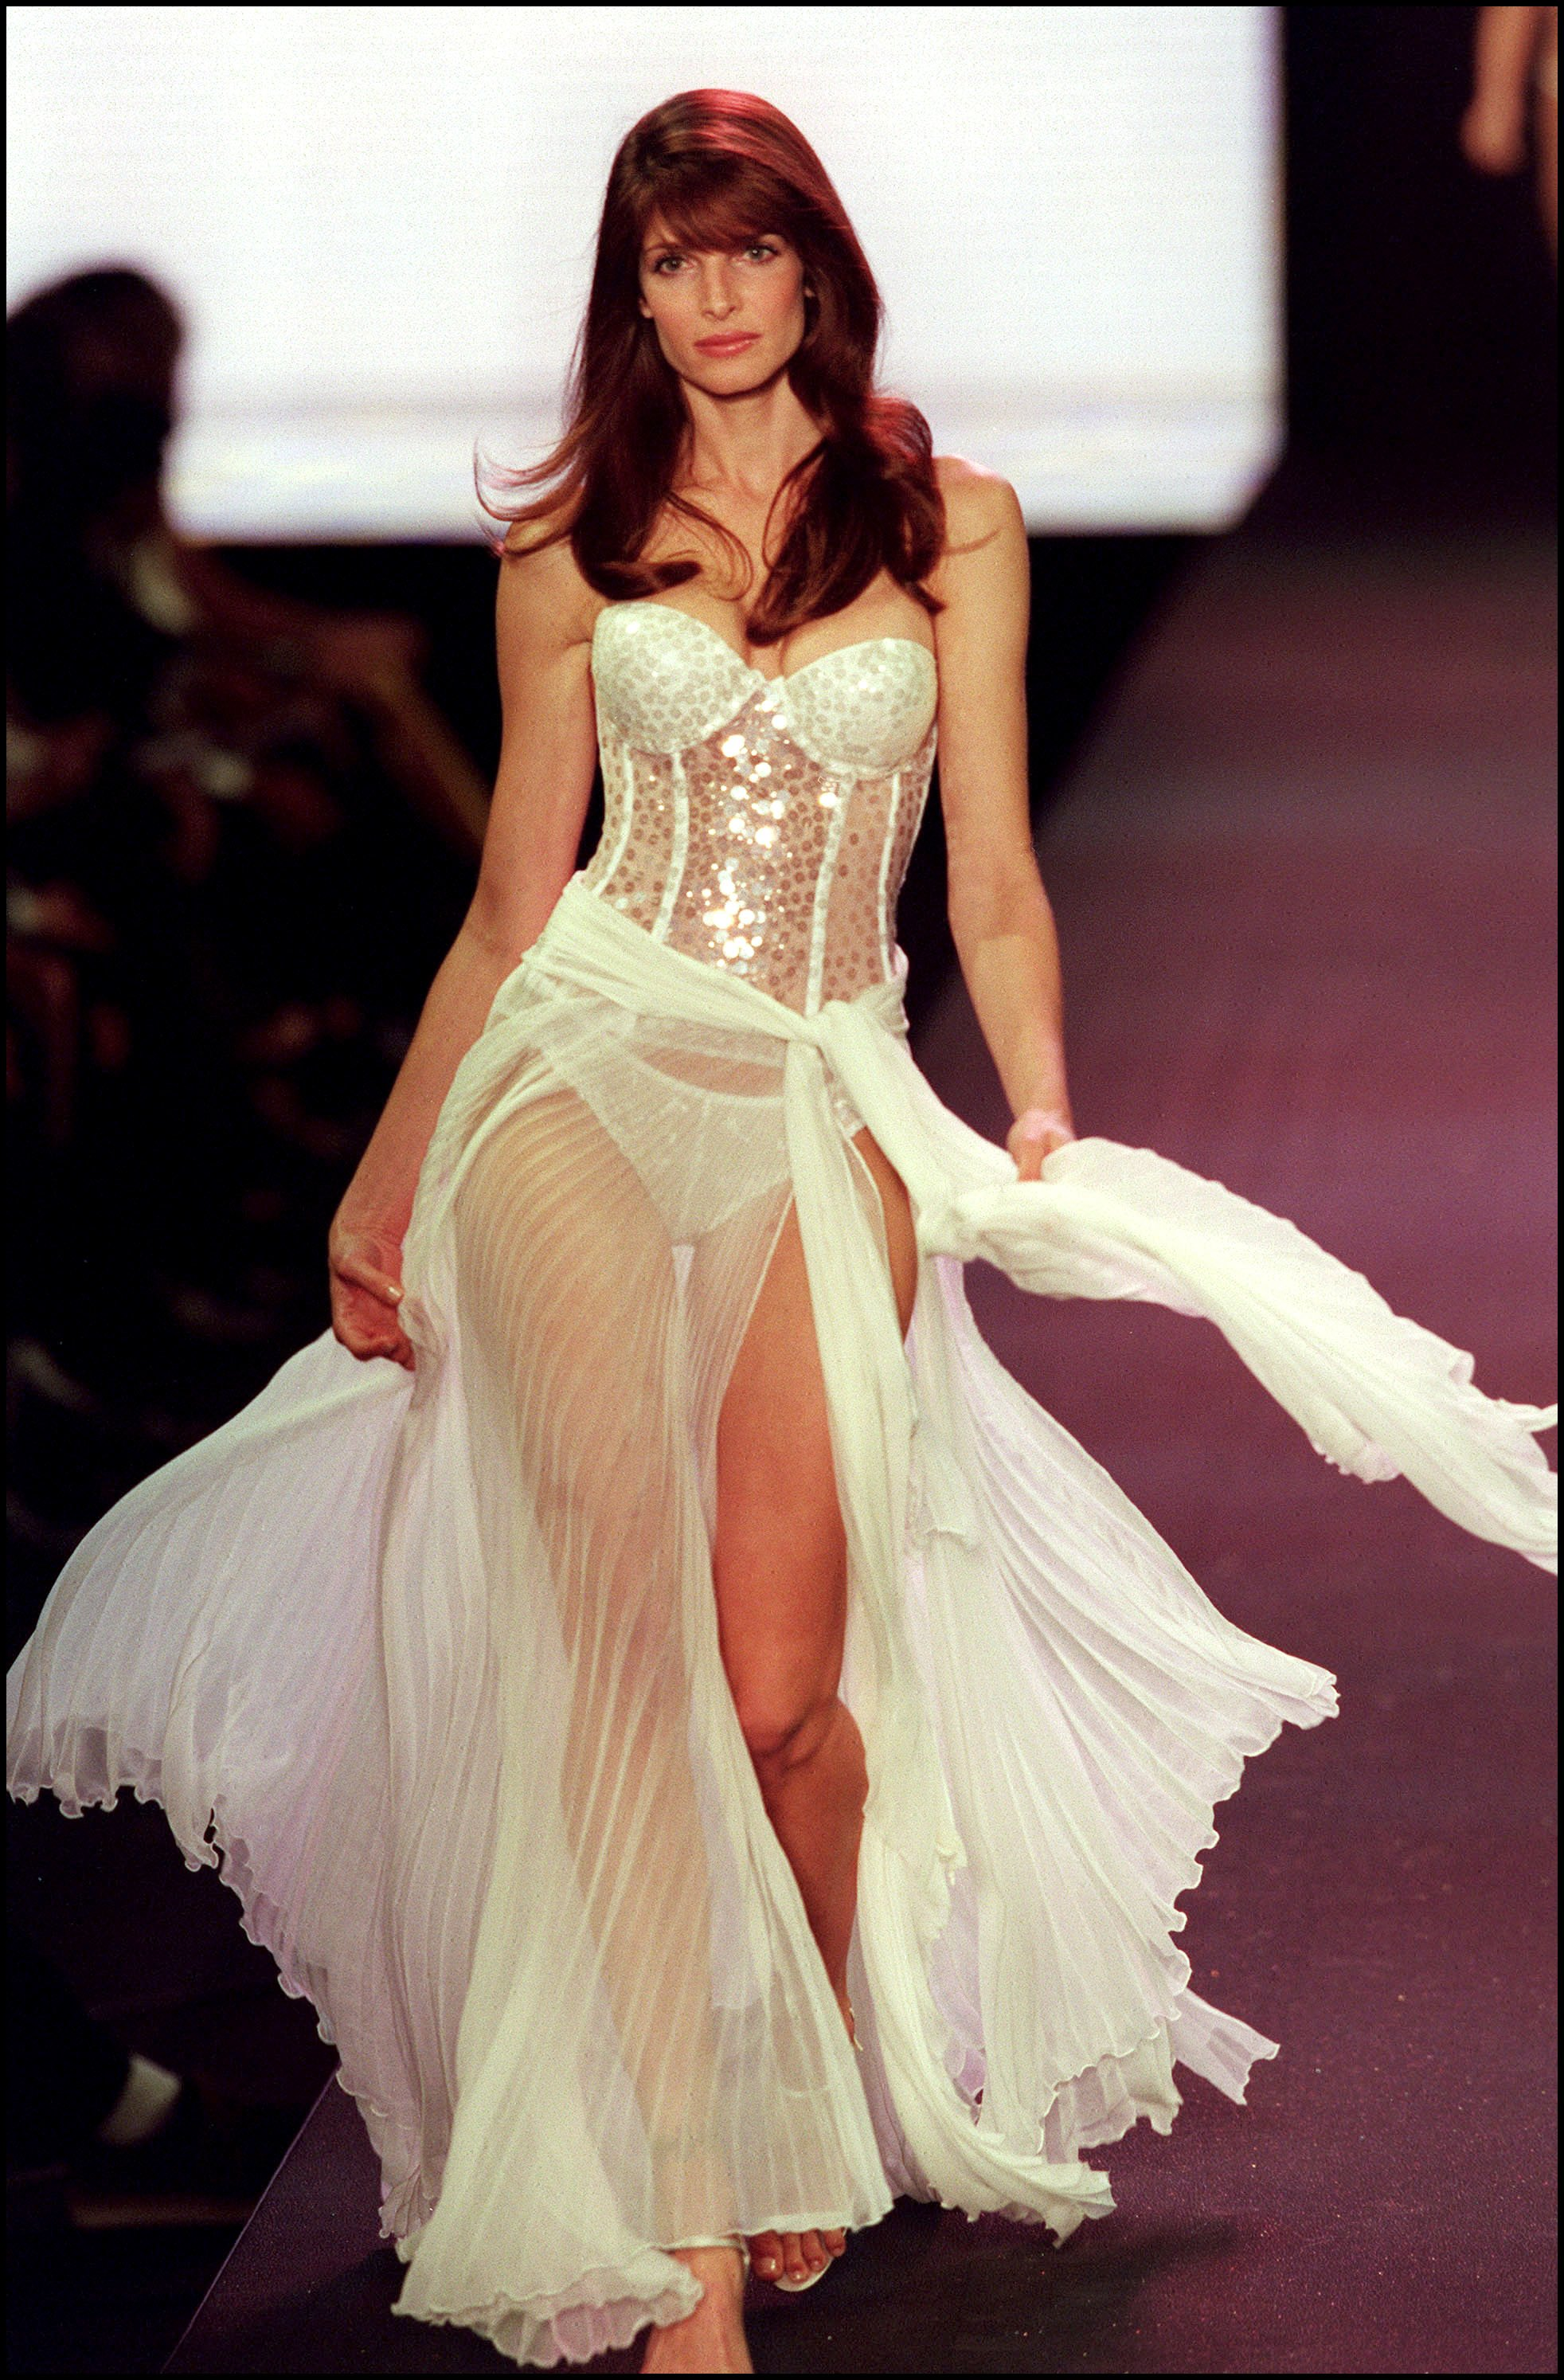 "<p>The <a href=""https://style.nine.com.au/2018/05/04/10/22/rihanna-vogue-fashion-style"" target=""_blank"" draggable=""false"">Victoria's Secret fashion show </a>has become one of the most anticipated events on the fashion calendar.</p> <p>From humble beginnings at New York's Plaza Hotel in 1995 where <a href=""https://style.nine.com.au/2018/02/20/09/19/candice-swanepoel-swimwear"" target=""_blank"" draggable=""false"">models strutted their stuff</a> down the catwalk with cardigans and handbags, the show has involved into a world-class spectacular.</p> <p>20 years on, hotel venues have been swapped for stadiums in Cannes, Paris, Miami and Shanghai, cardigans have been thrown out for 40-pound Angel wings, and handbags ditched in favour of $2 million dollar diamond encrusted bras.</p> <p>And then there's the audience. The televised event is watched by an average of 6.6 million people each year. All tuning in to catch a glimpse of the glamorous, glittering Angels.</p> <p>Walking in the lingerie giant's show is the holy grail for models, getting picked is like being handed the golden ticket. It puts little-known models on the map and sky-rockets careers to supermodel status.</p> <p>Tyra Banks, Heidi Klum, and Gisele Bündchen are all Victoria's secret alumni and there's a new breed of angels such as the likes of Gigi Hadid and Kendall Jenner making their mark and creating their own iconic show moments.</p> <p>Click through to take a look at some of the standout moments from the fashion show over the last 20 years.</p>"